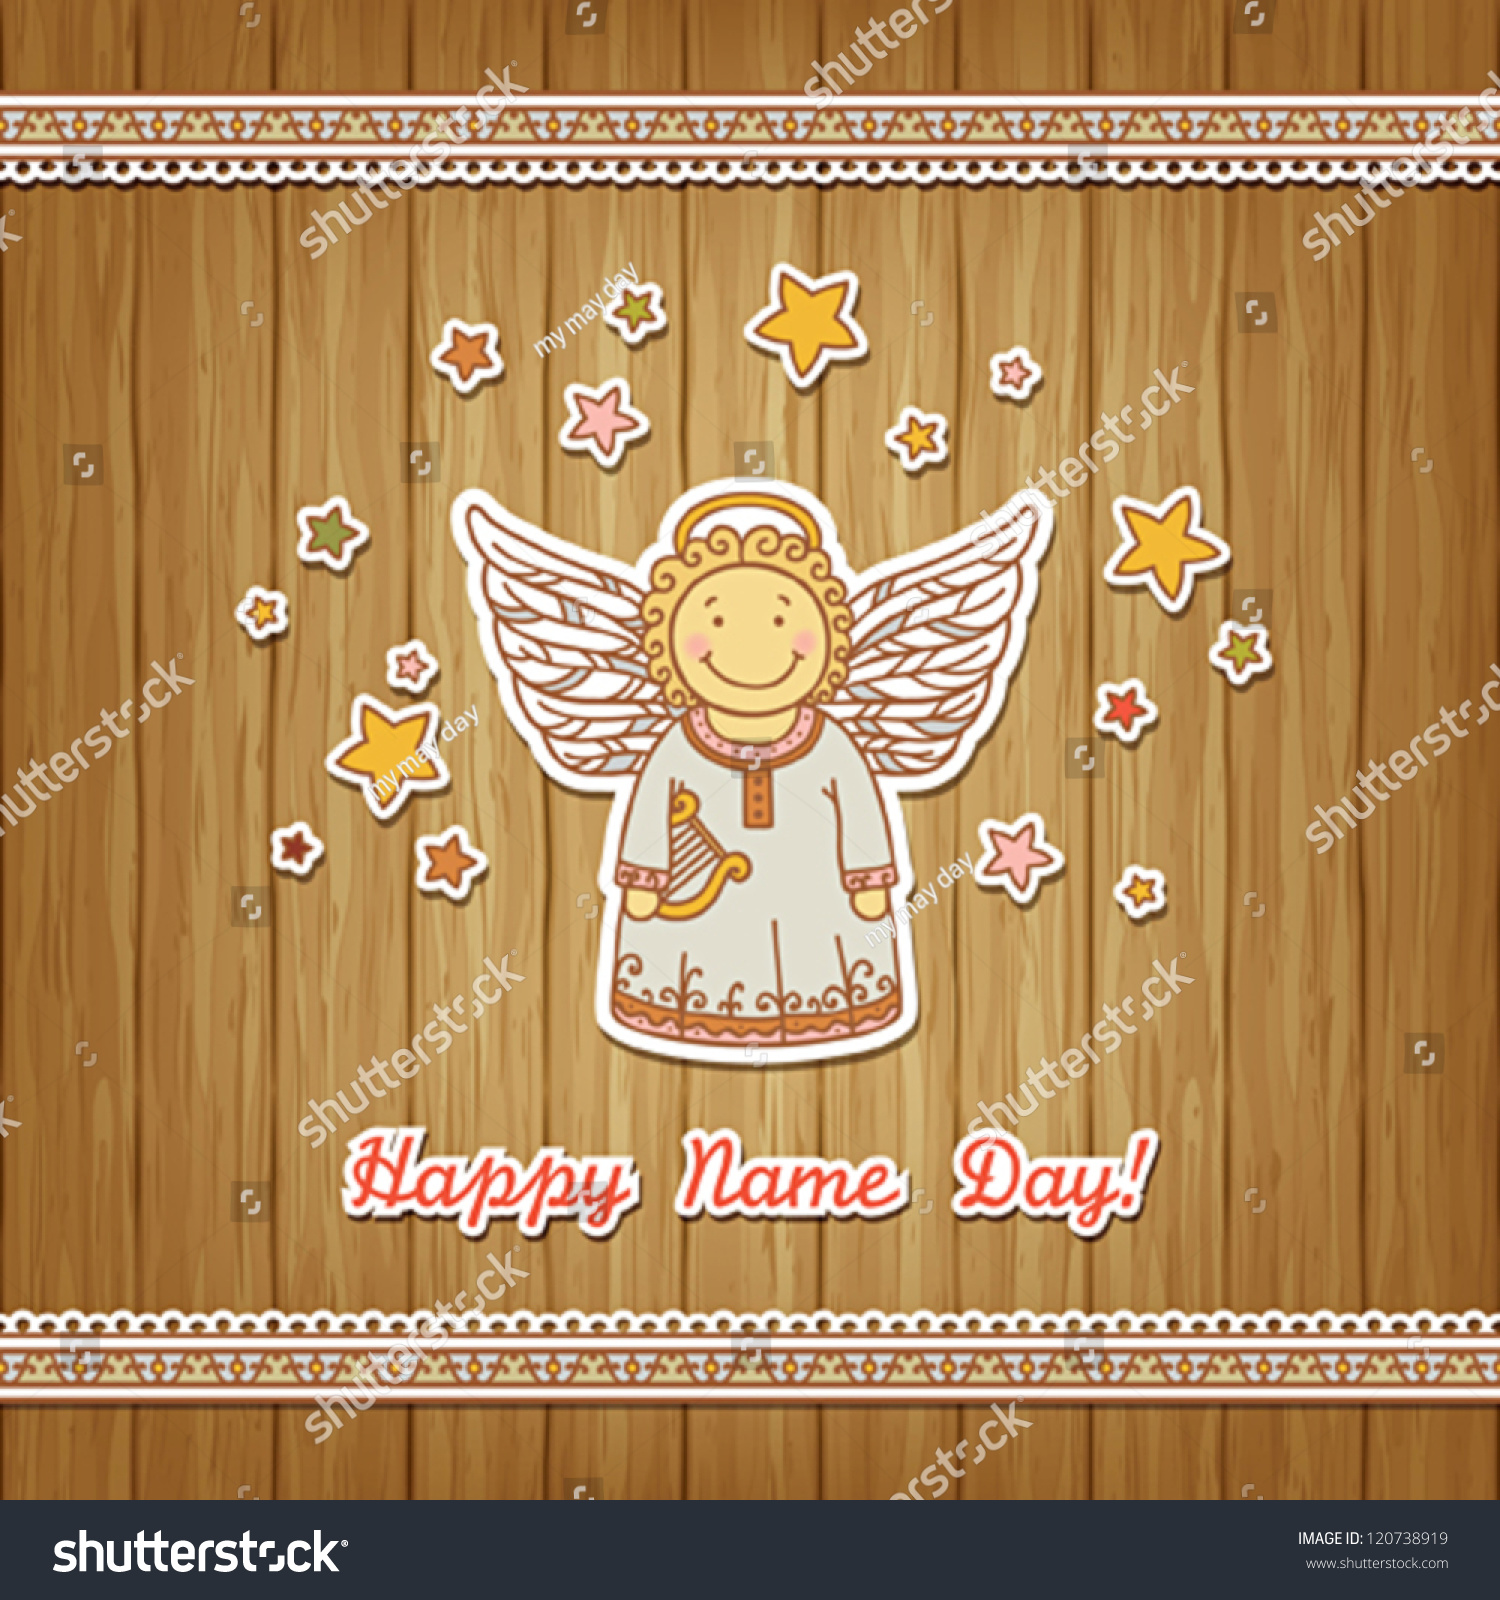 Name Day - Angel Day. Congratulations on Angel Day 2